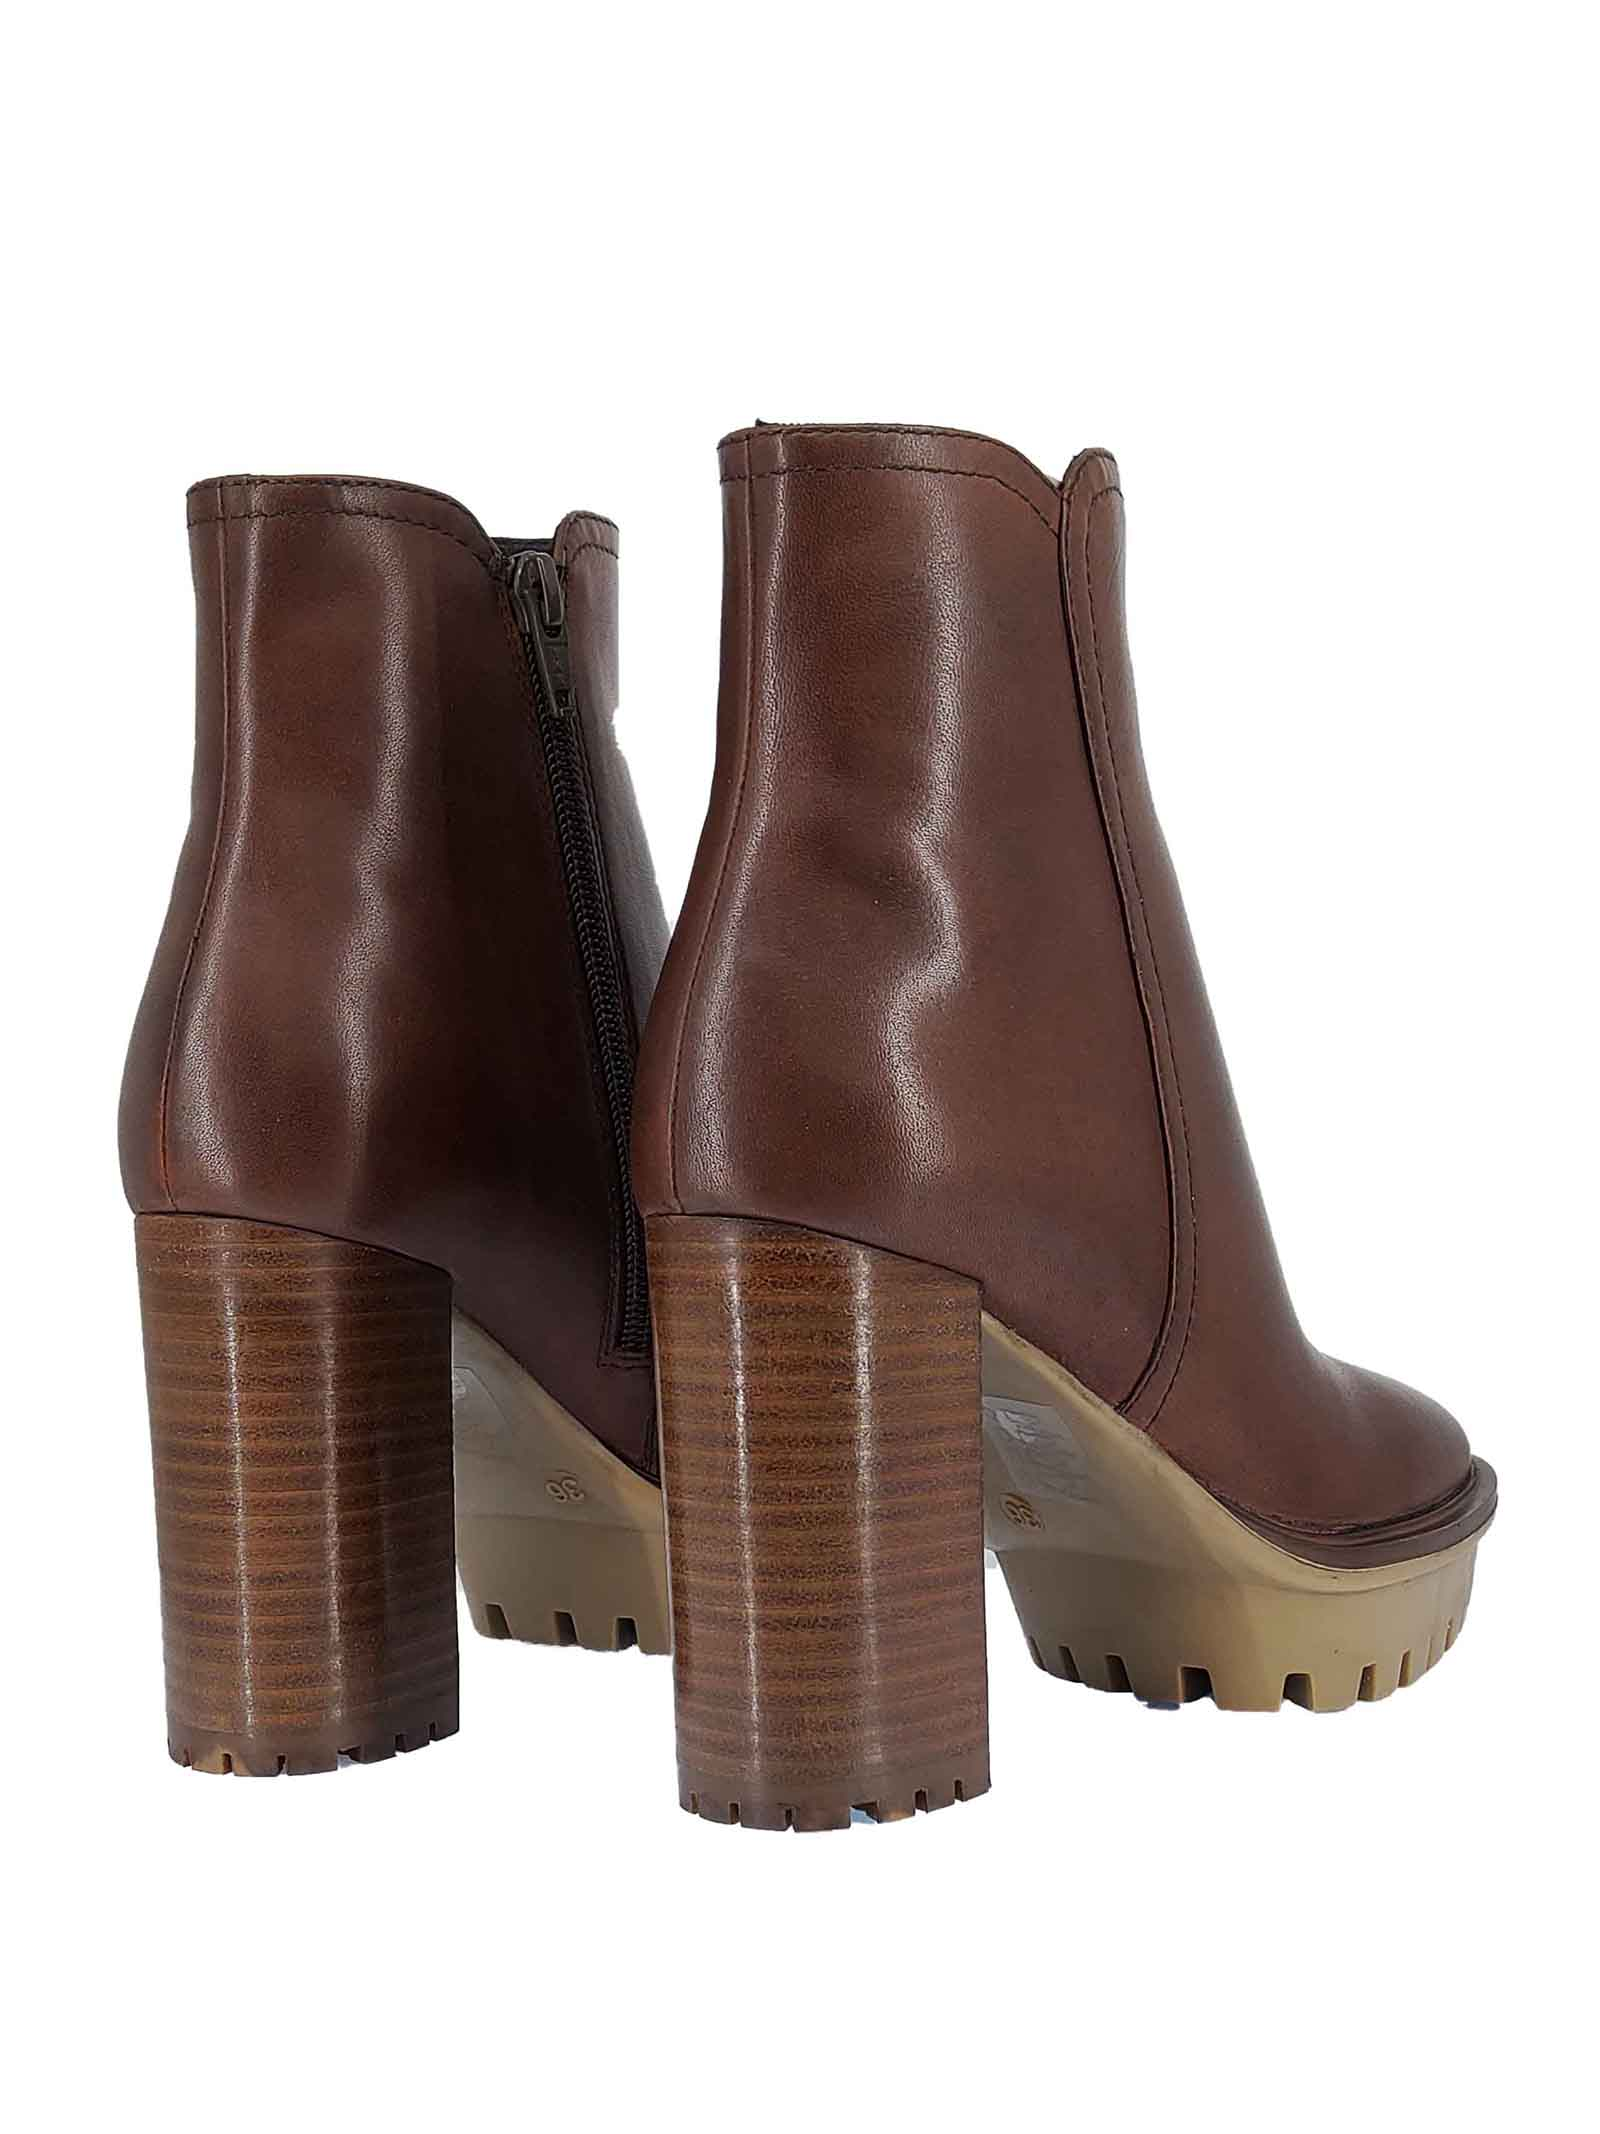 Women's Shoes Tep Tea Ankle Boots in Brown Leather with High Heel and Matching Rubber Plateau Bruno Premi   Ankle Boots   BC0905X013